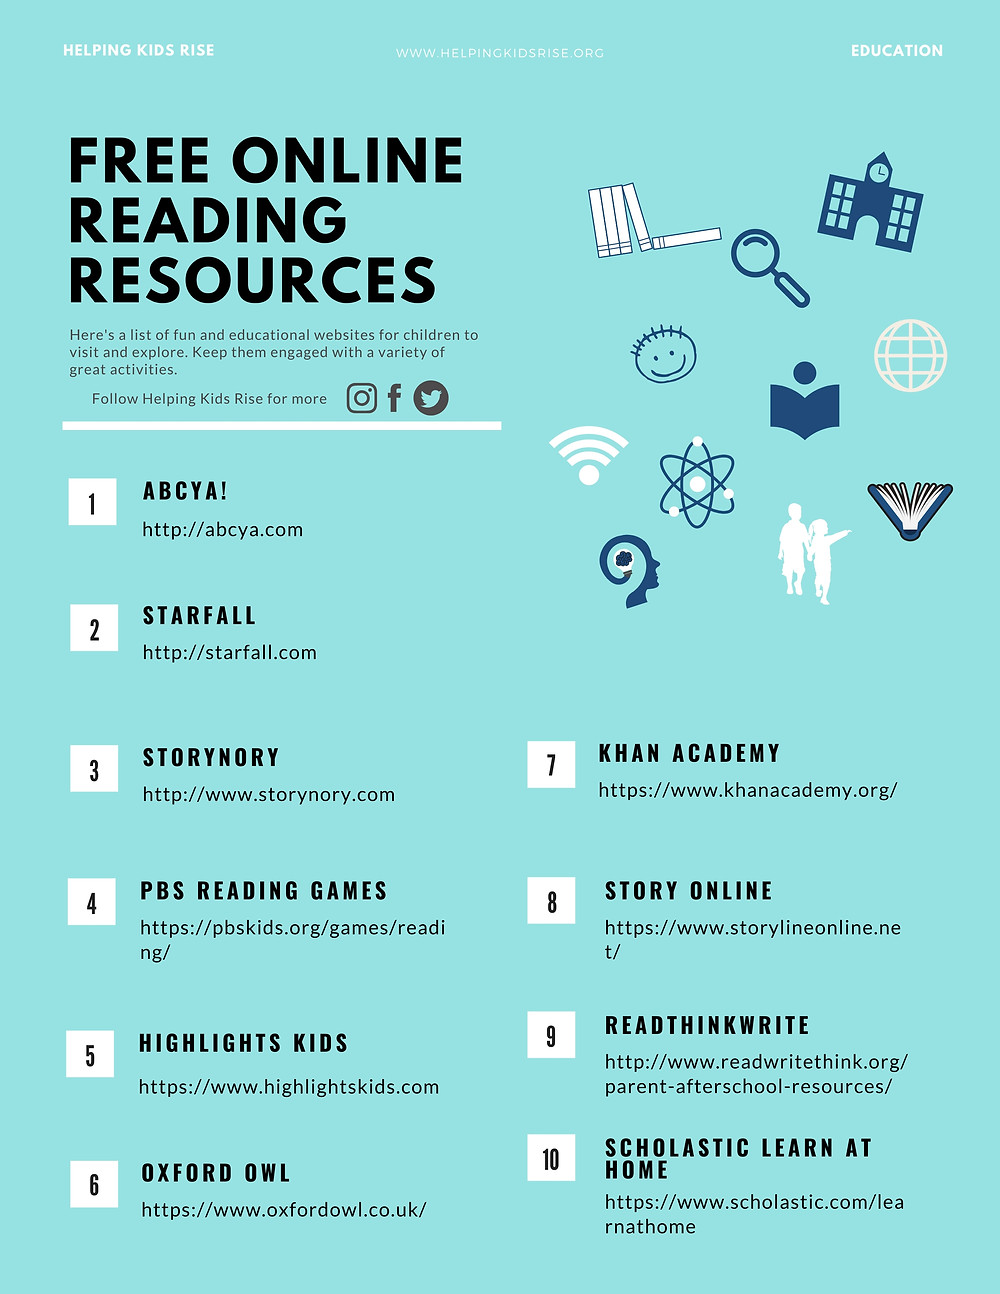 Online reading websites for children